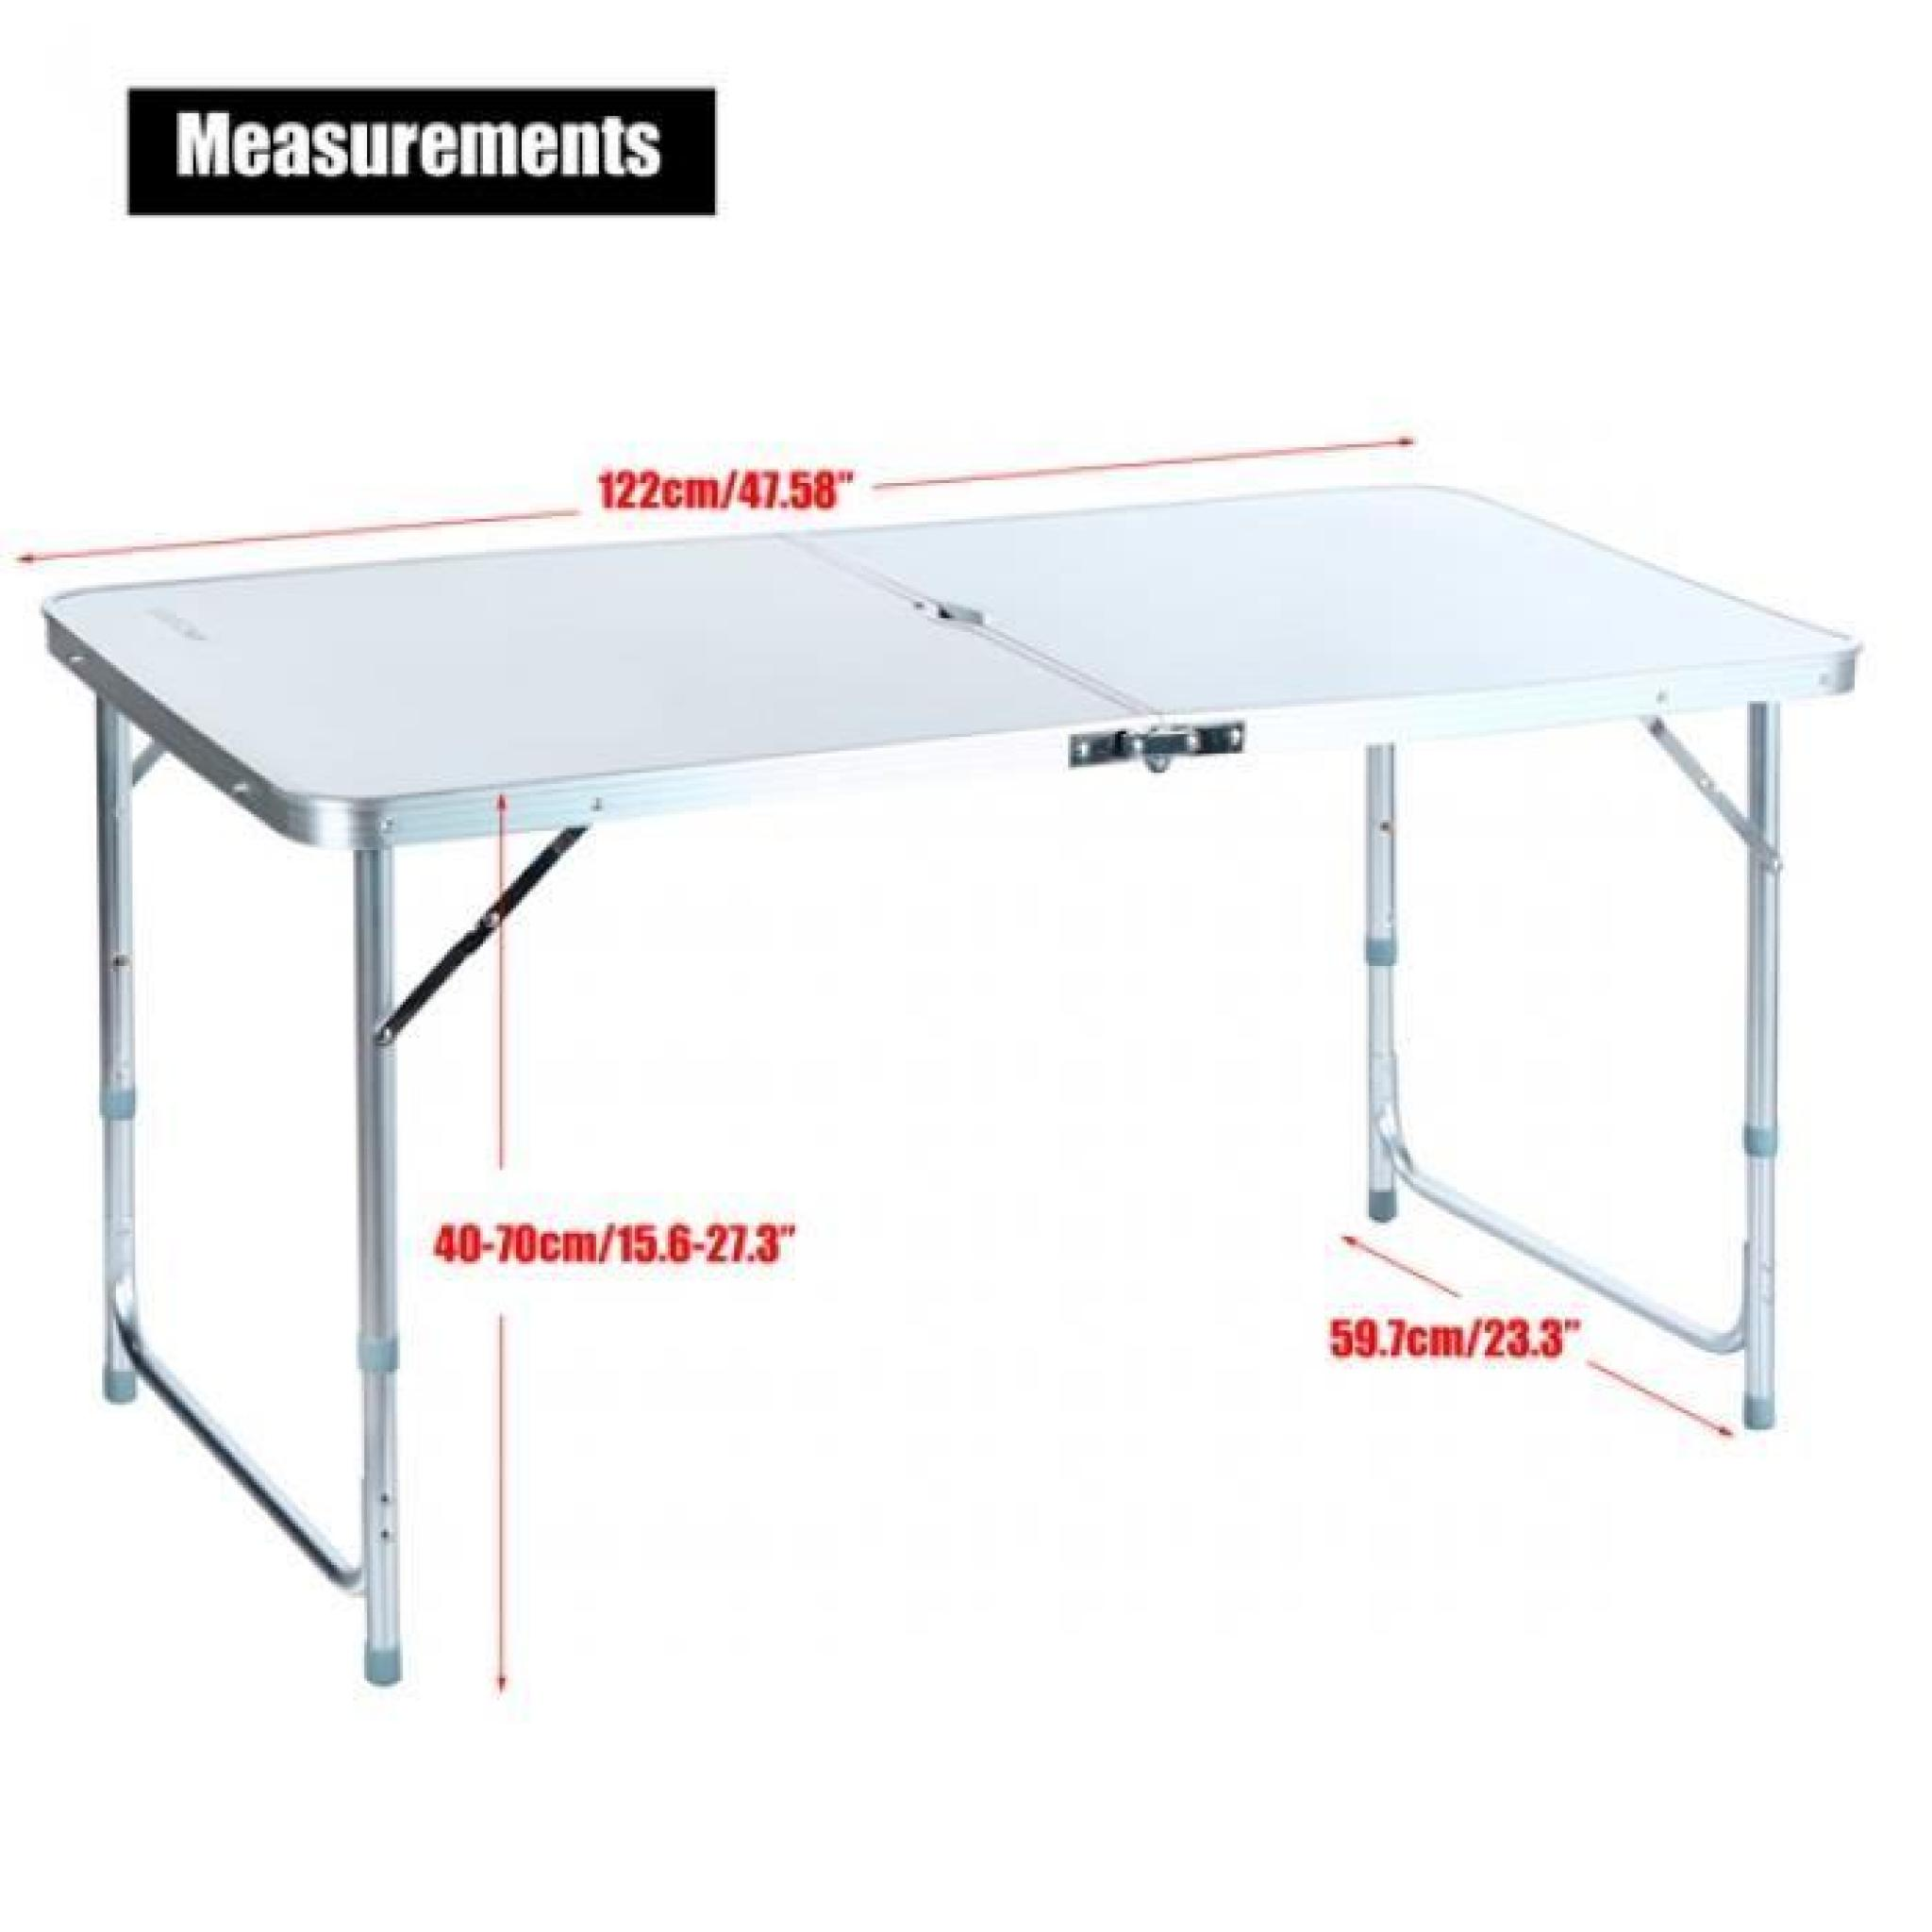 Table Exterieur Pliante Bois Table Pliante Bois Exterieur Cool Tables Pliantes Ikea